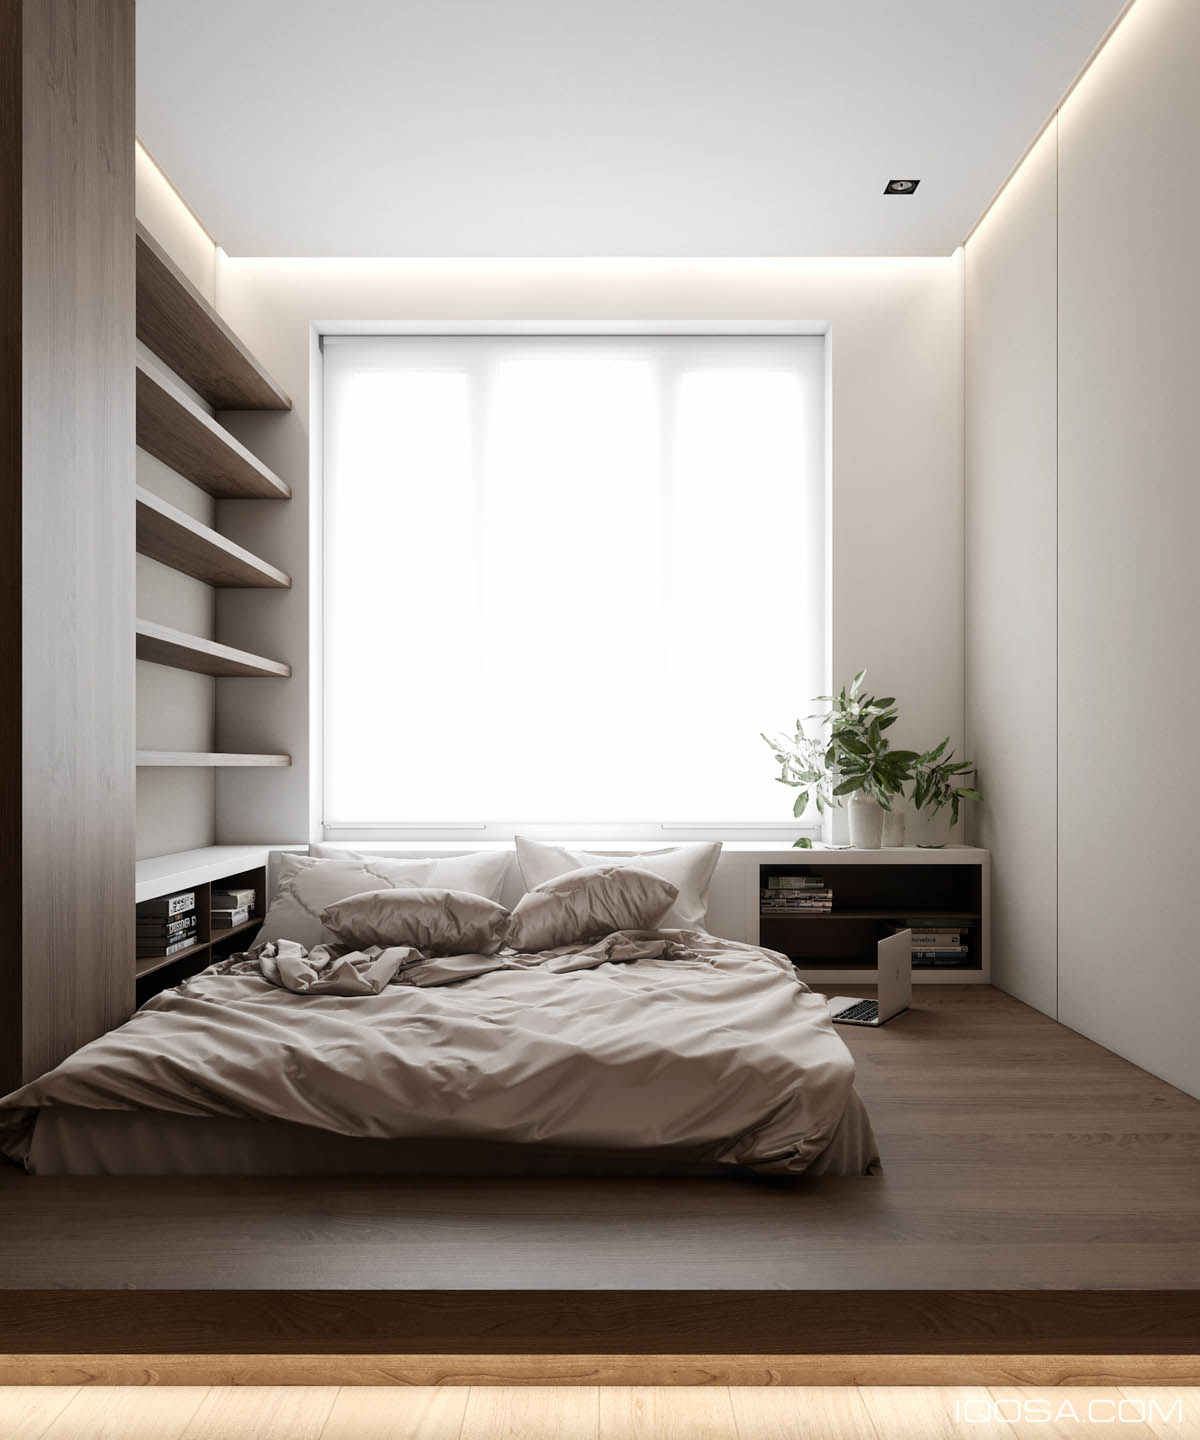 Home Design Under 60 Square Meters: 3 Examples That ... on Bedroom Minimalist Design  id=49970